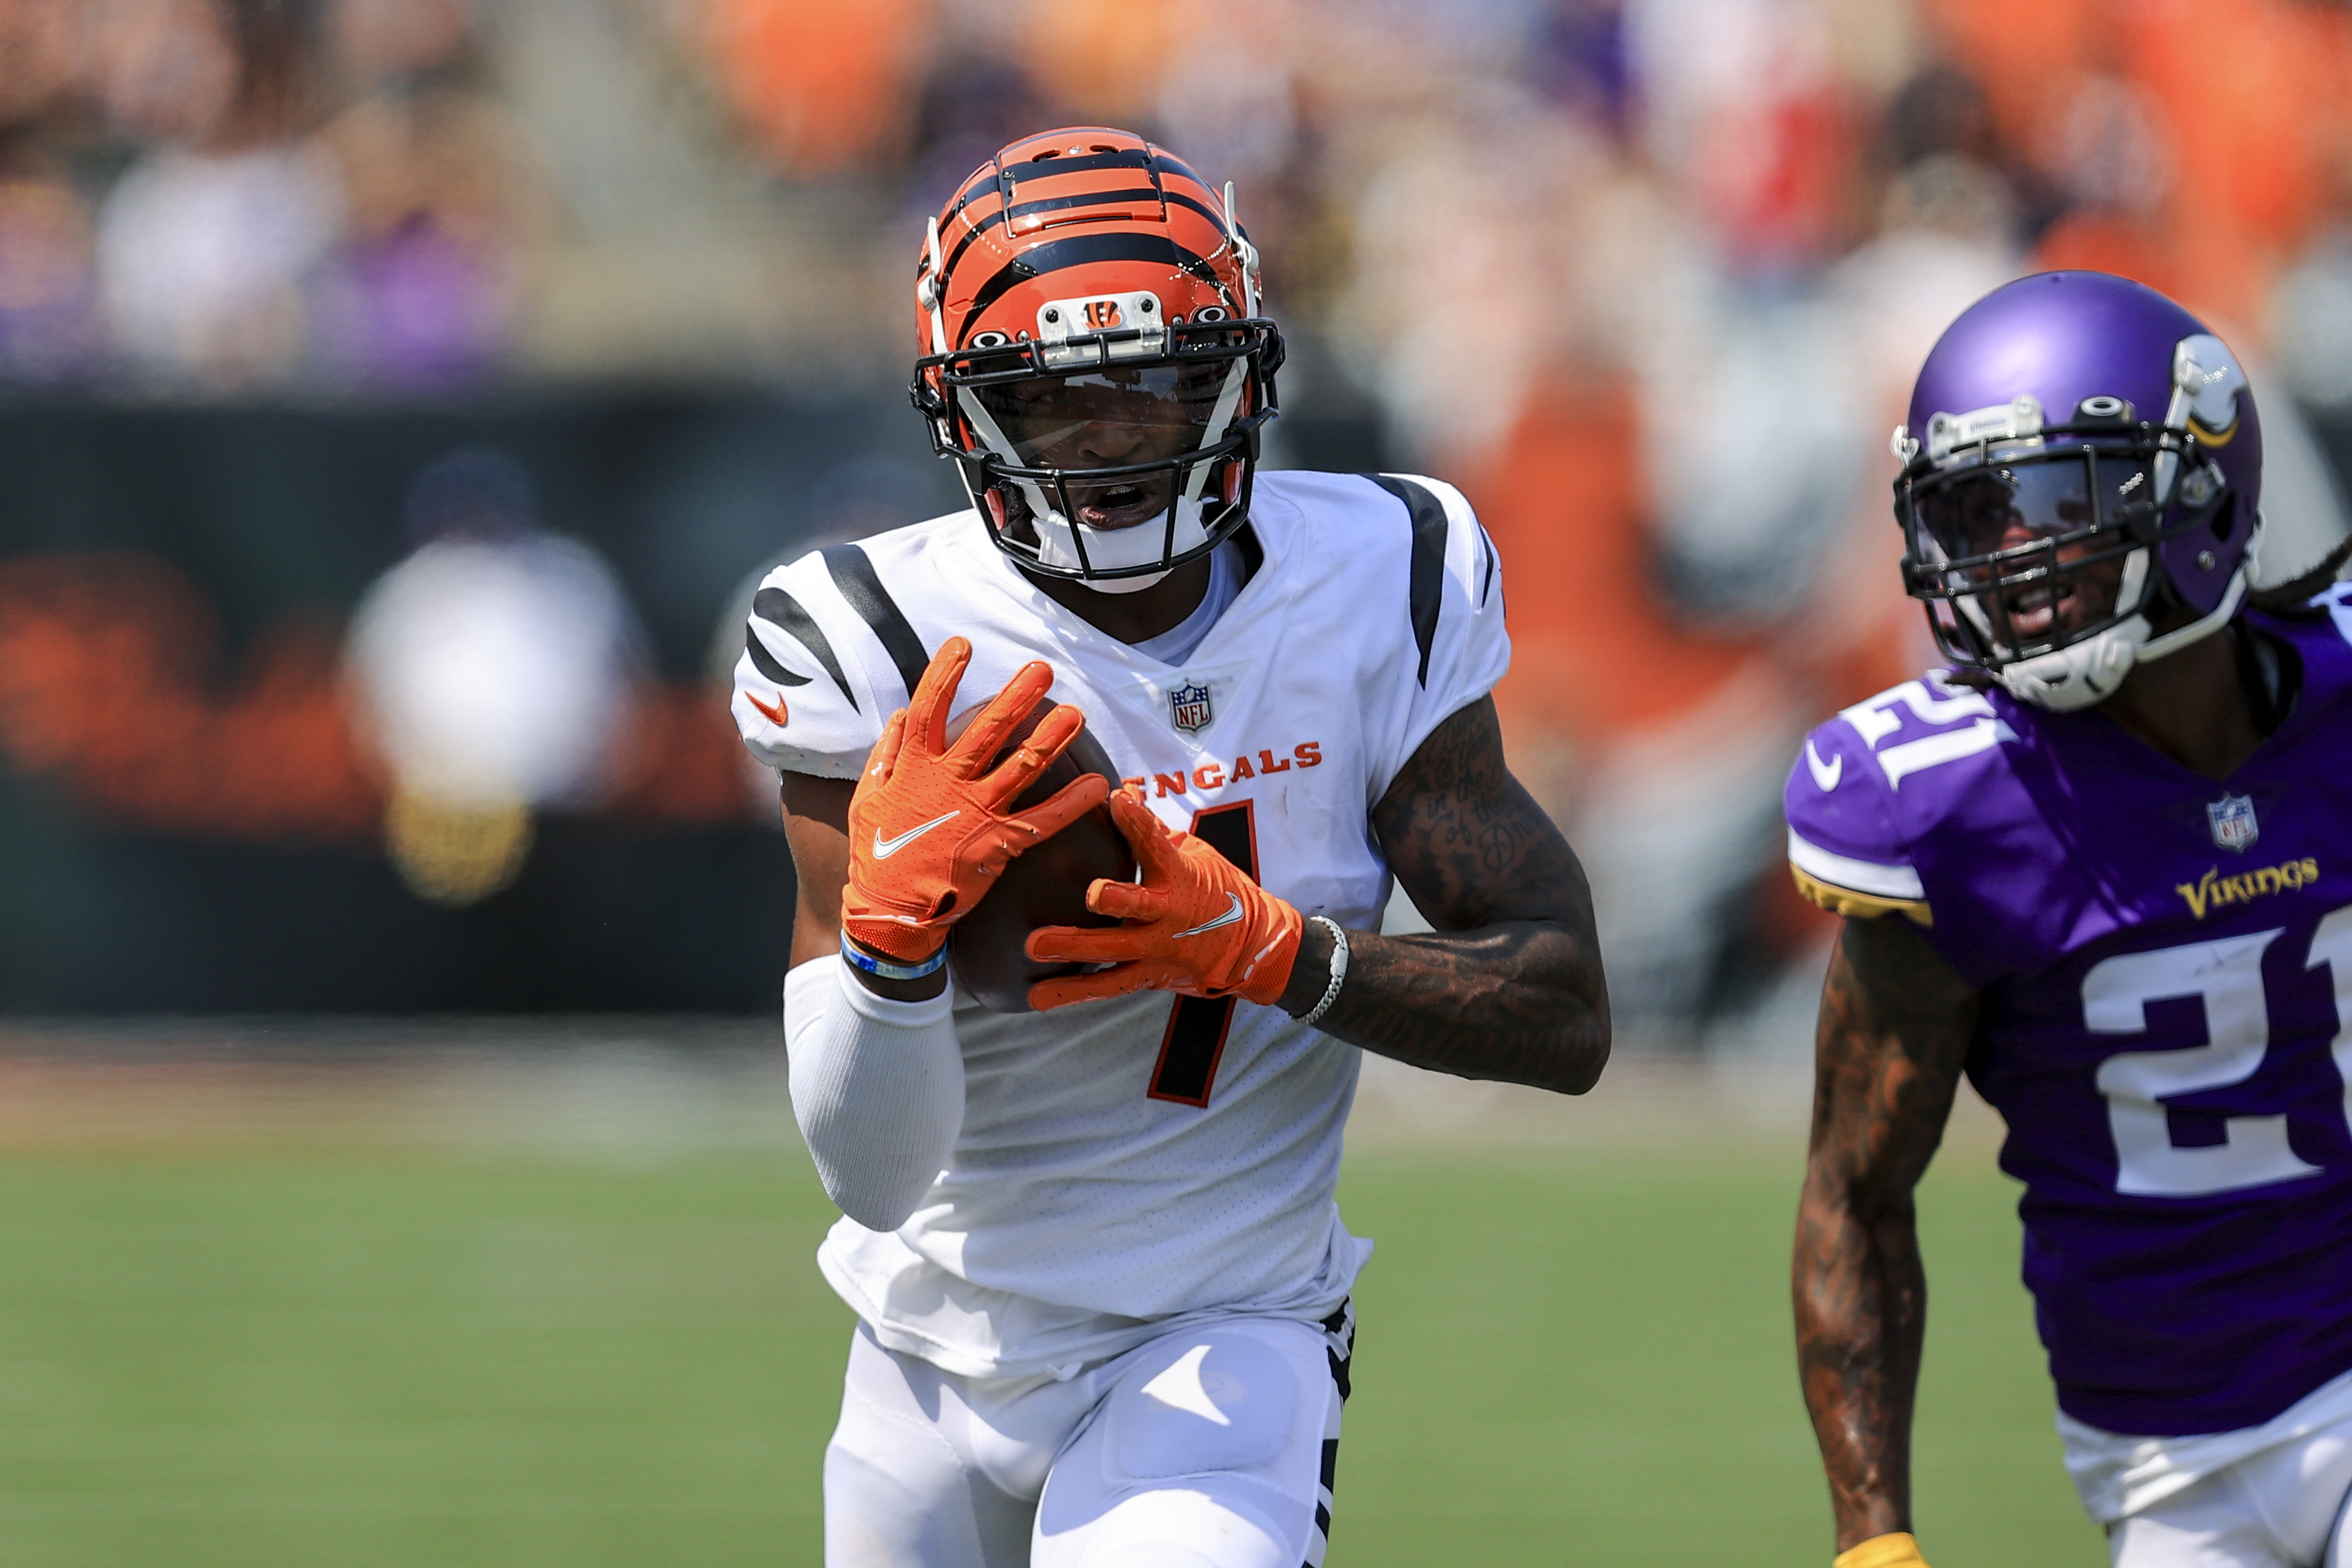 Bengals rookie wide receiver Ja'Marr Chase (1) hauls in a 50-yard touchdown pass from Joe Burrow in the Bengals' 27-24 overtime victory against the Vikings last Sunday at Paul Brown Stadium in Cincinnati.